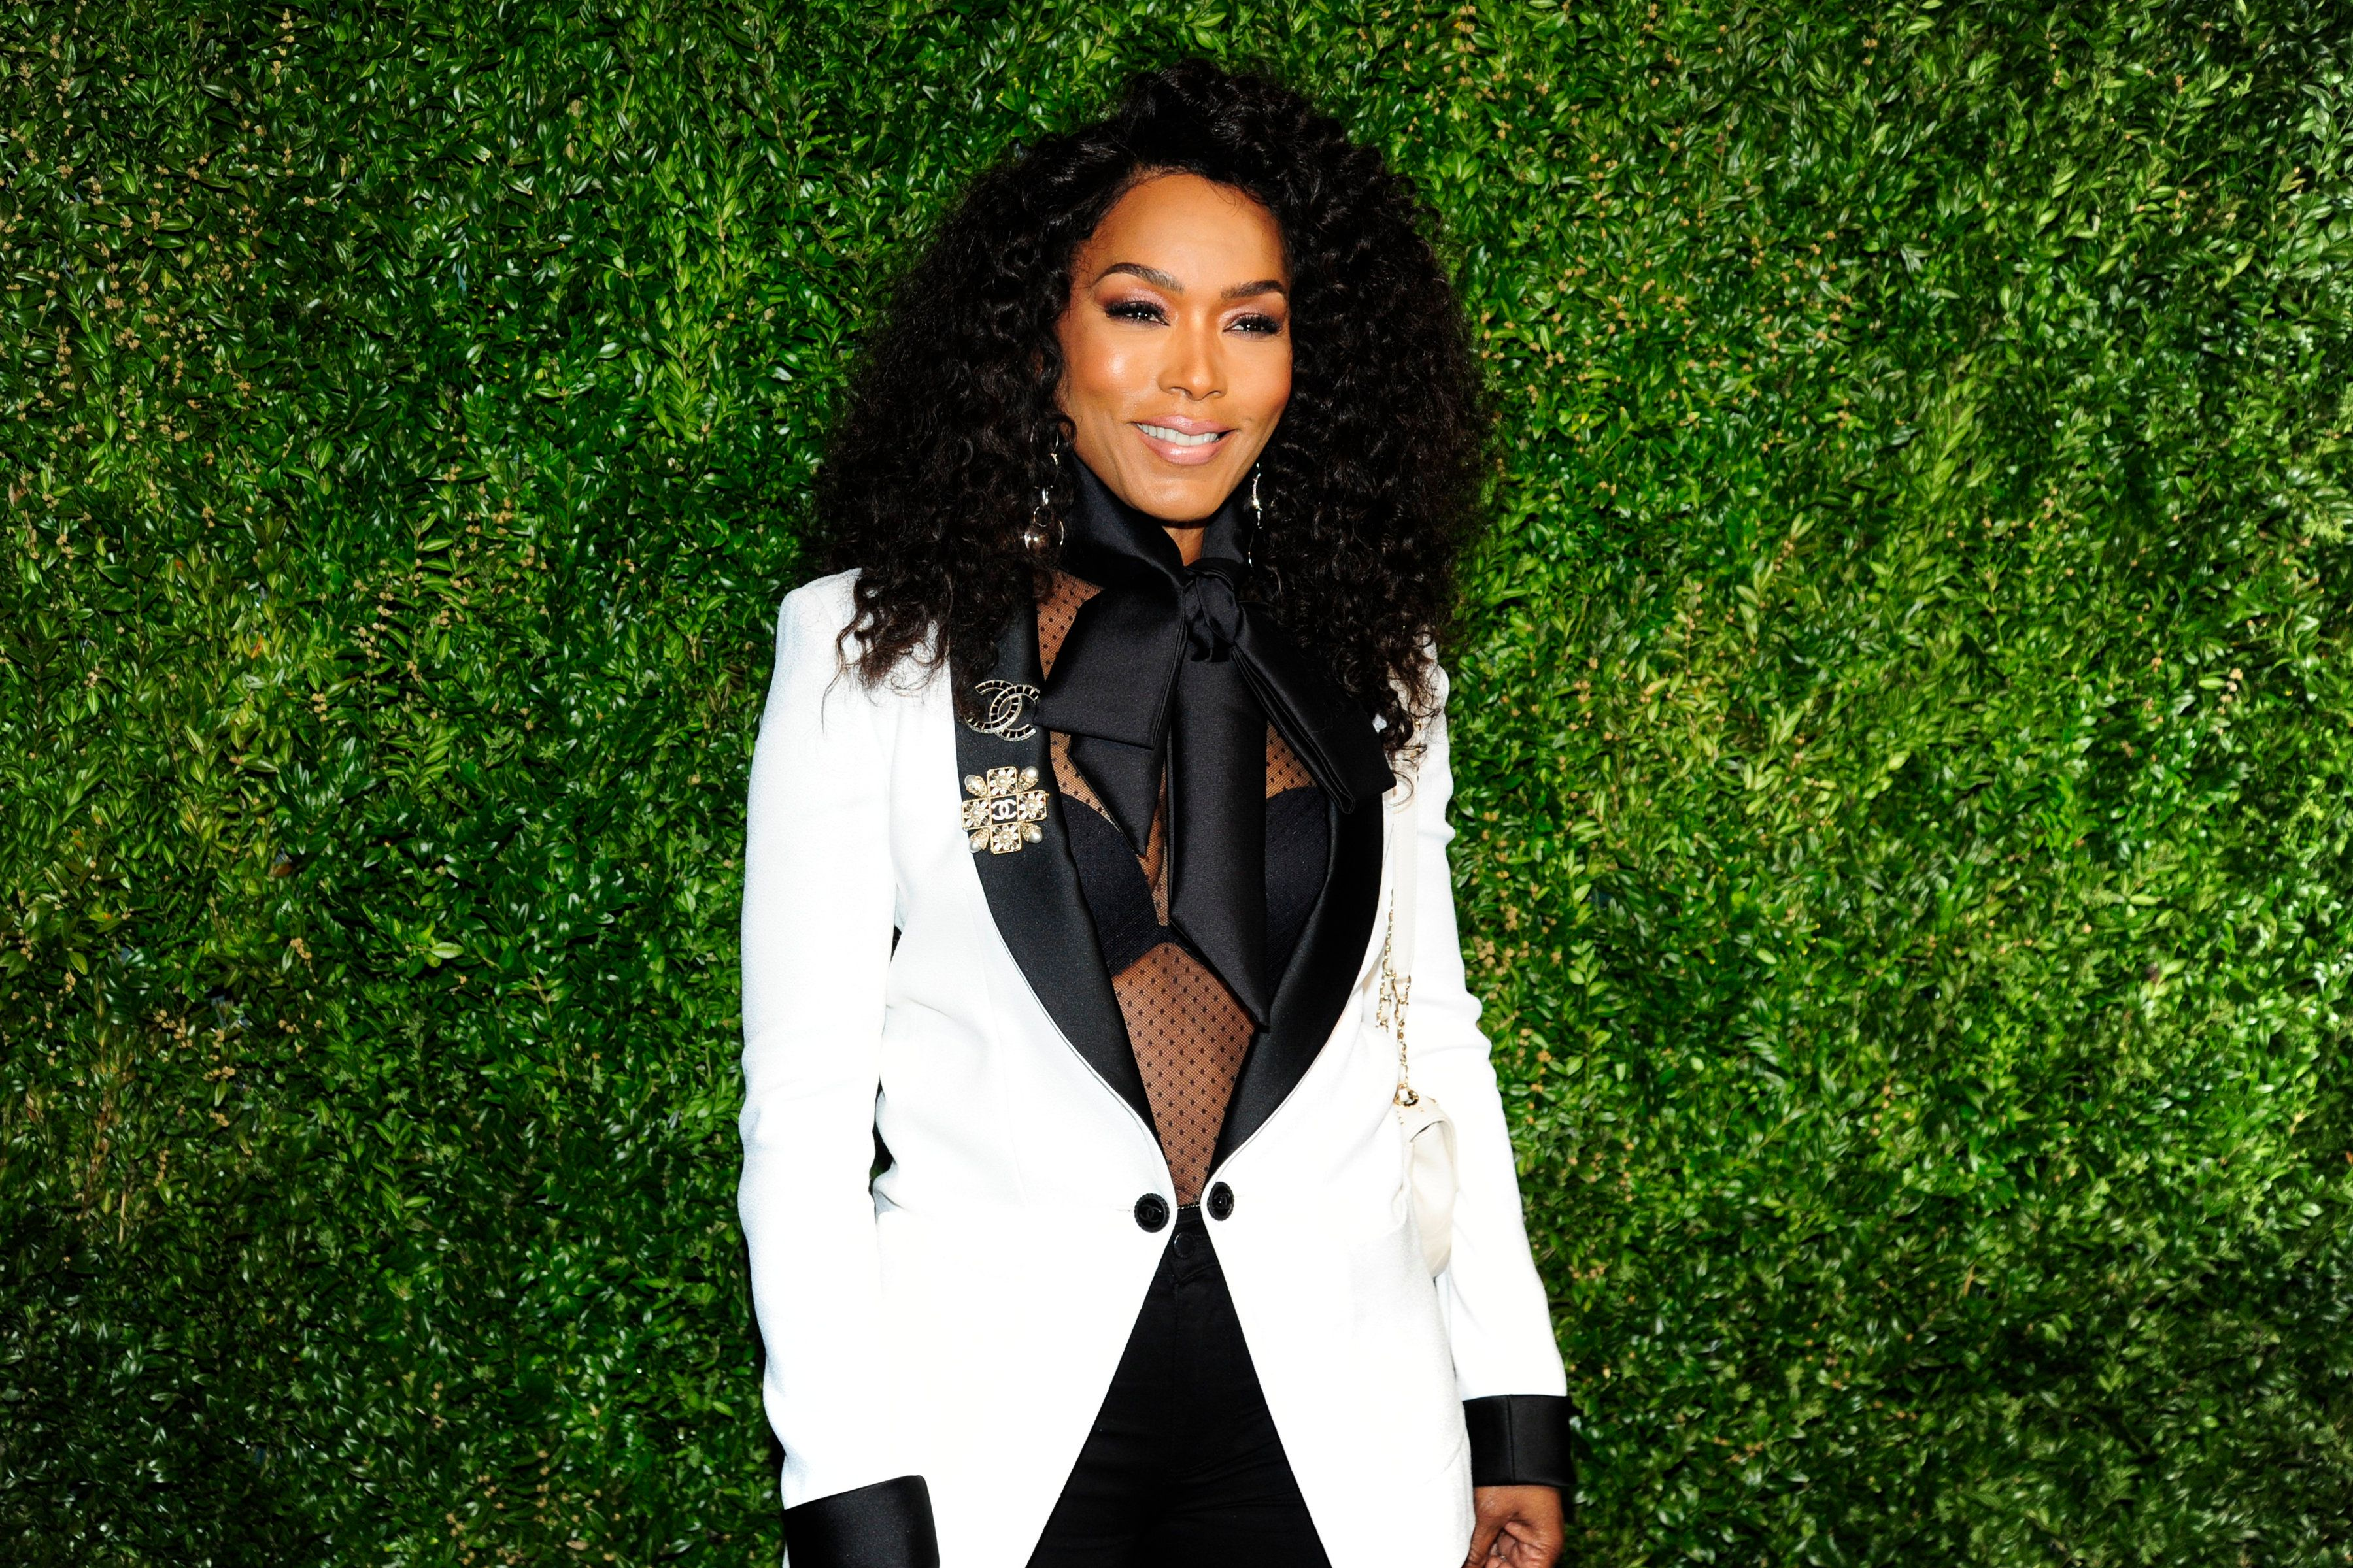 Angela Bassett attending the 2019 Tribeca Film Festival Artist's Dinner hosted by Chanel at Balthazar on April 29, 2019 in New York City.   Source: Getty Images